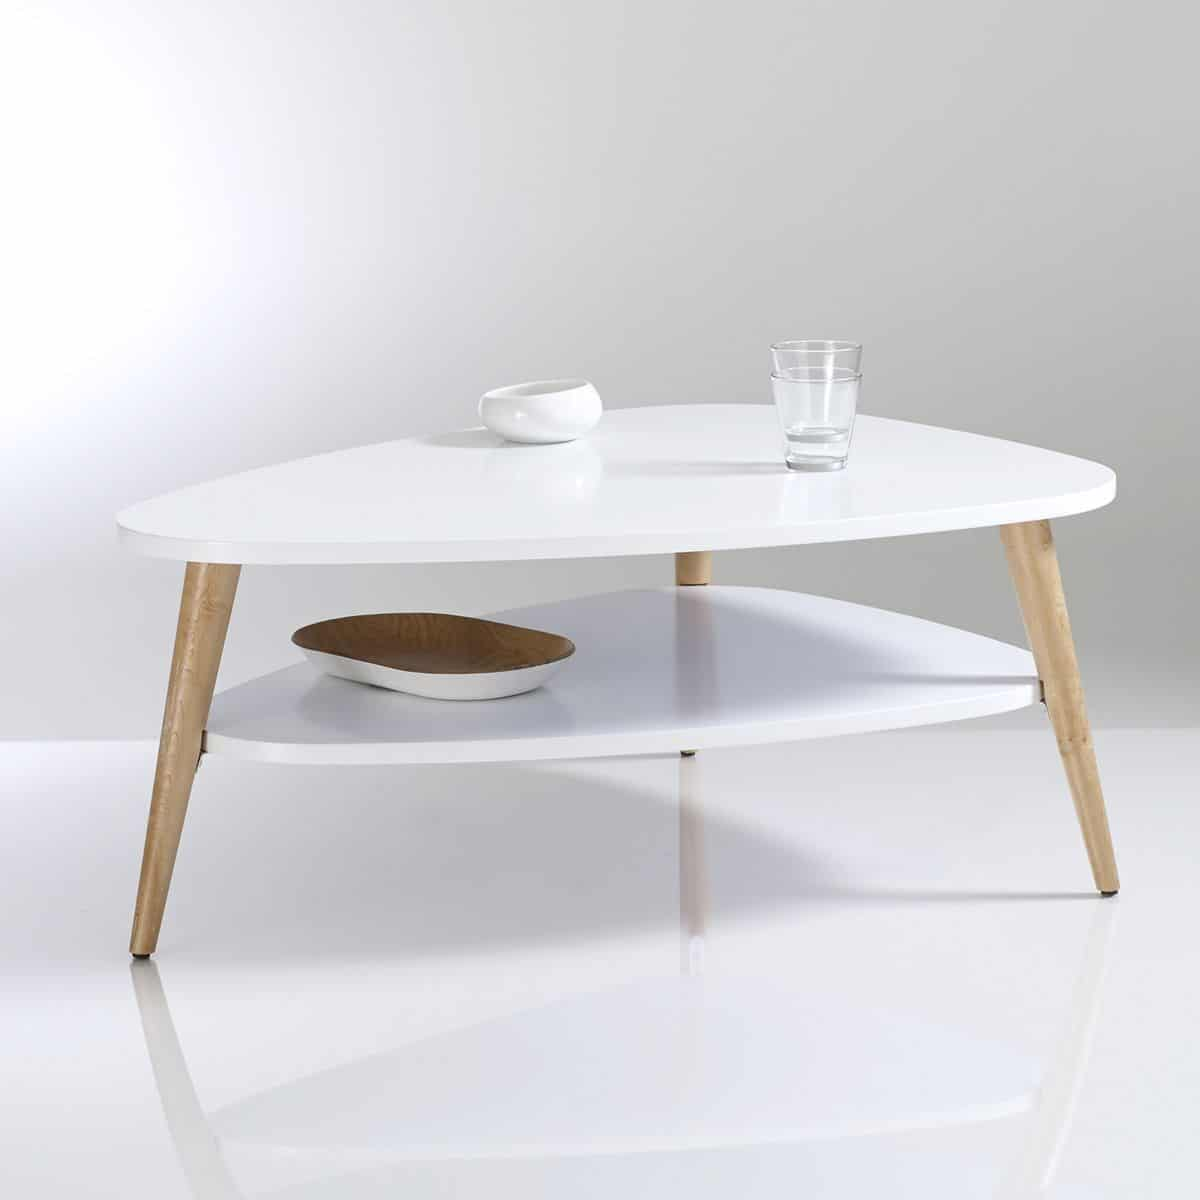 Top 50 de la table basse scandinave guide et s lection for Table basse scandinave blanche